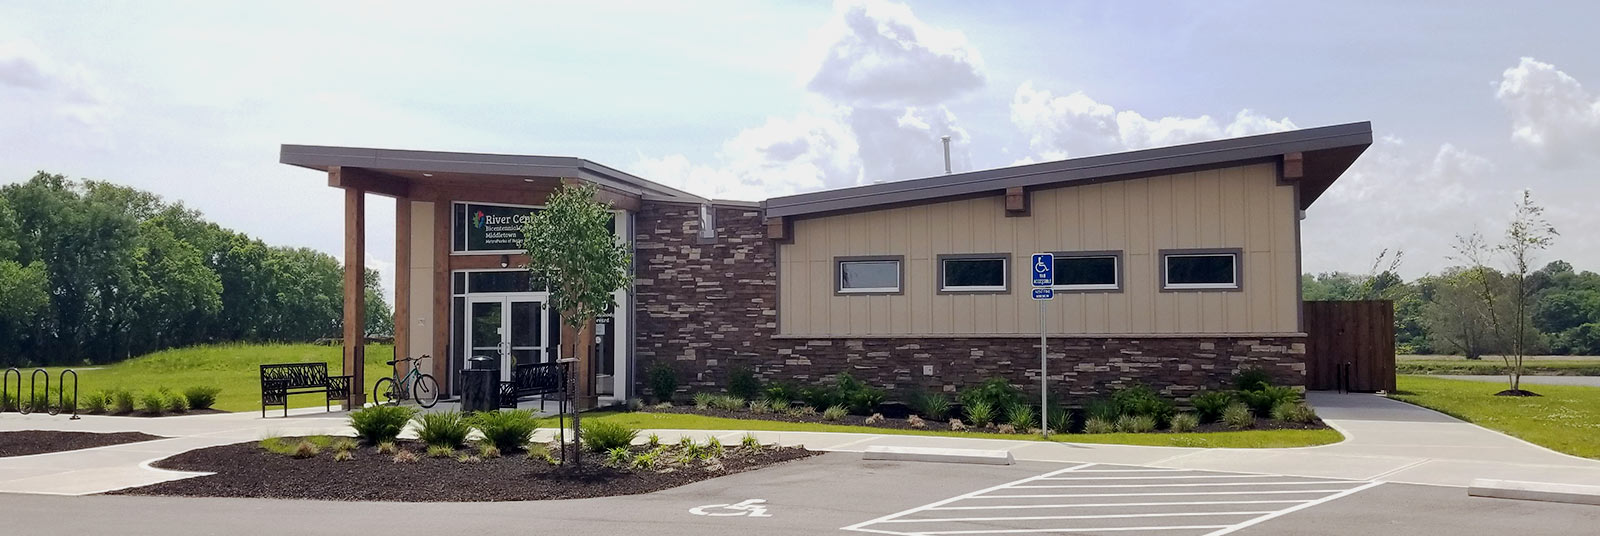 View of the completed facility at MetroParks of River Center in Middletown, Ohio.